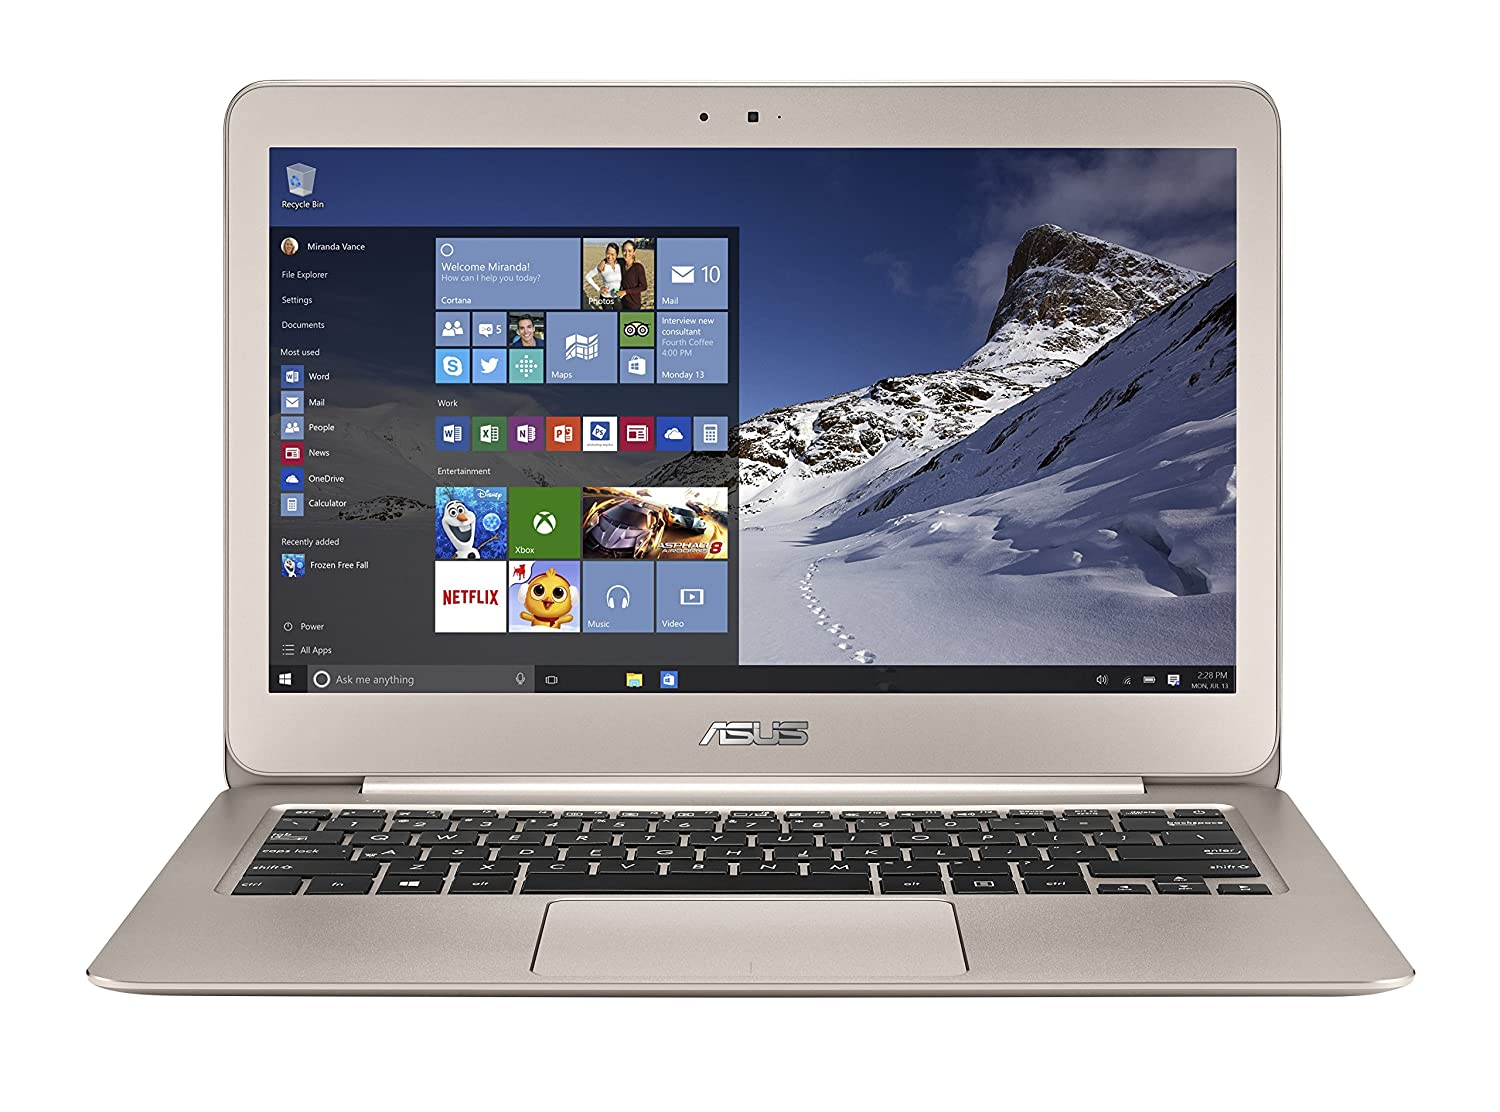 Amazon - ASUS Zenbook Intel Core i5 2.2GHz 13.3-inch Laptop - $749